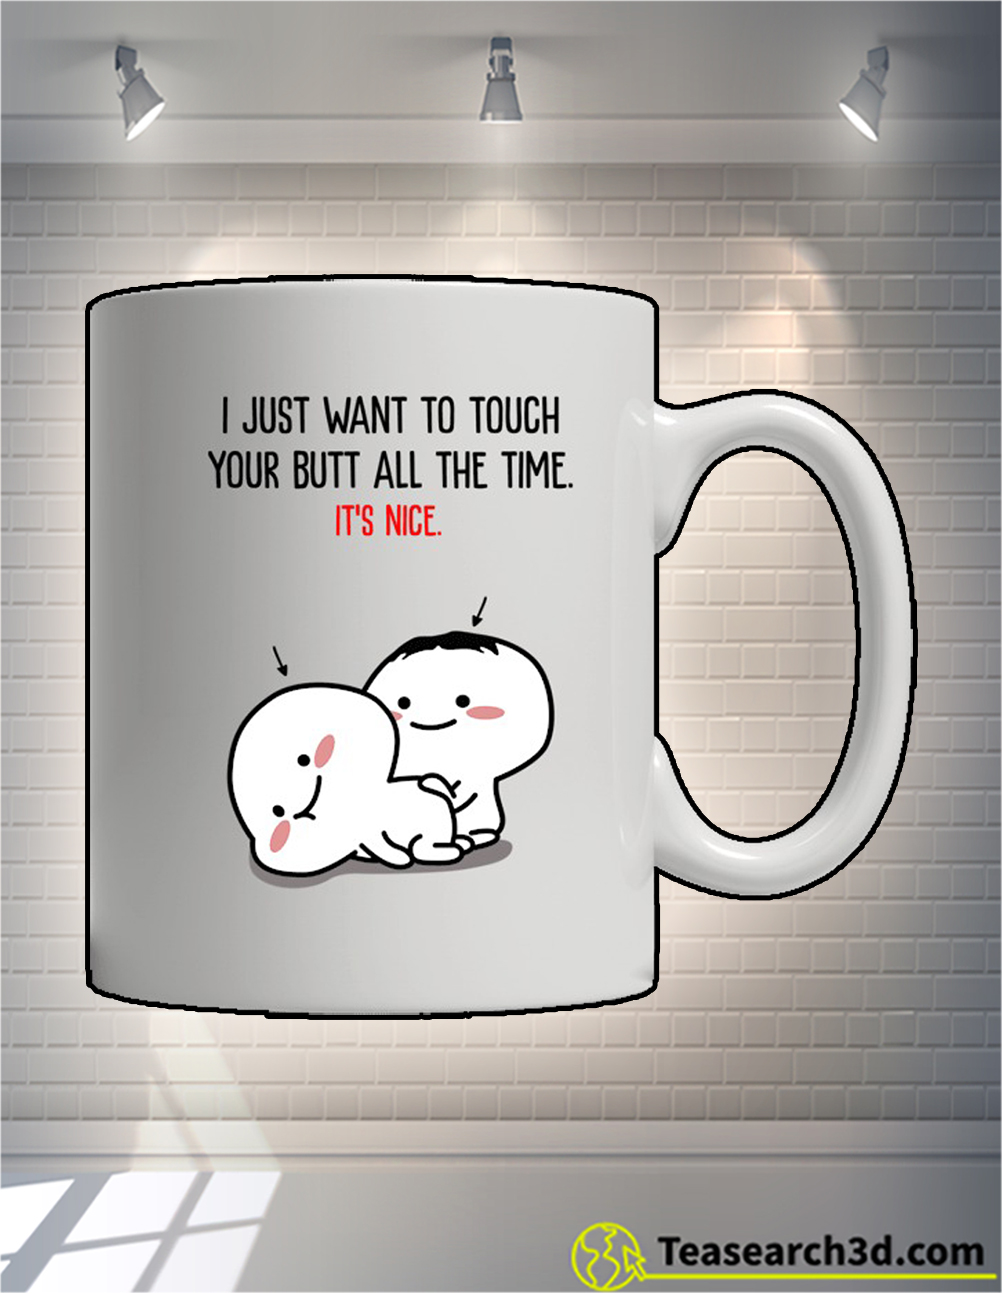 Personalized I just want to touch your butt all the time it's nice mug